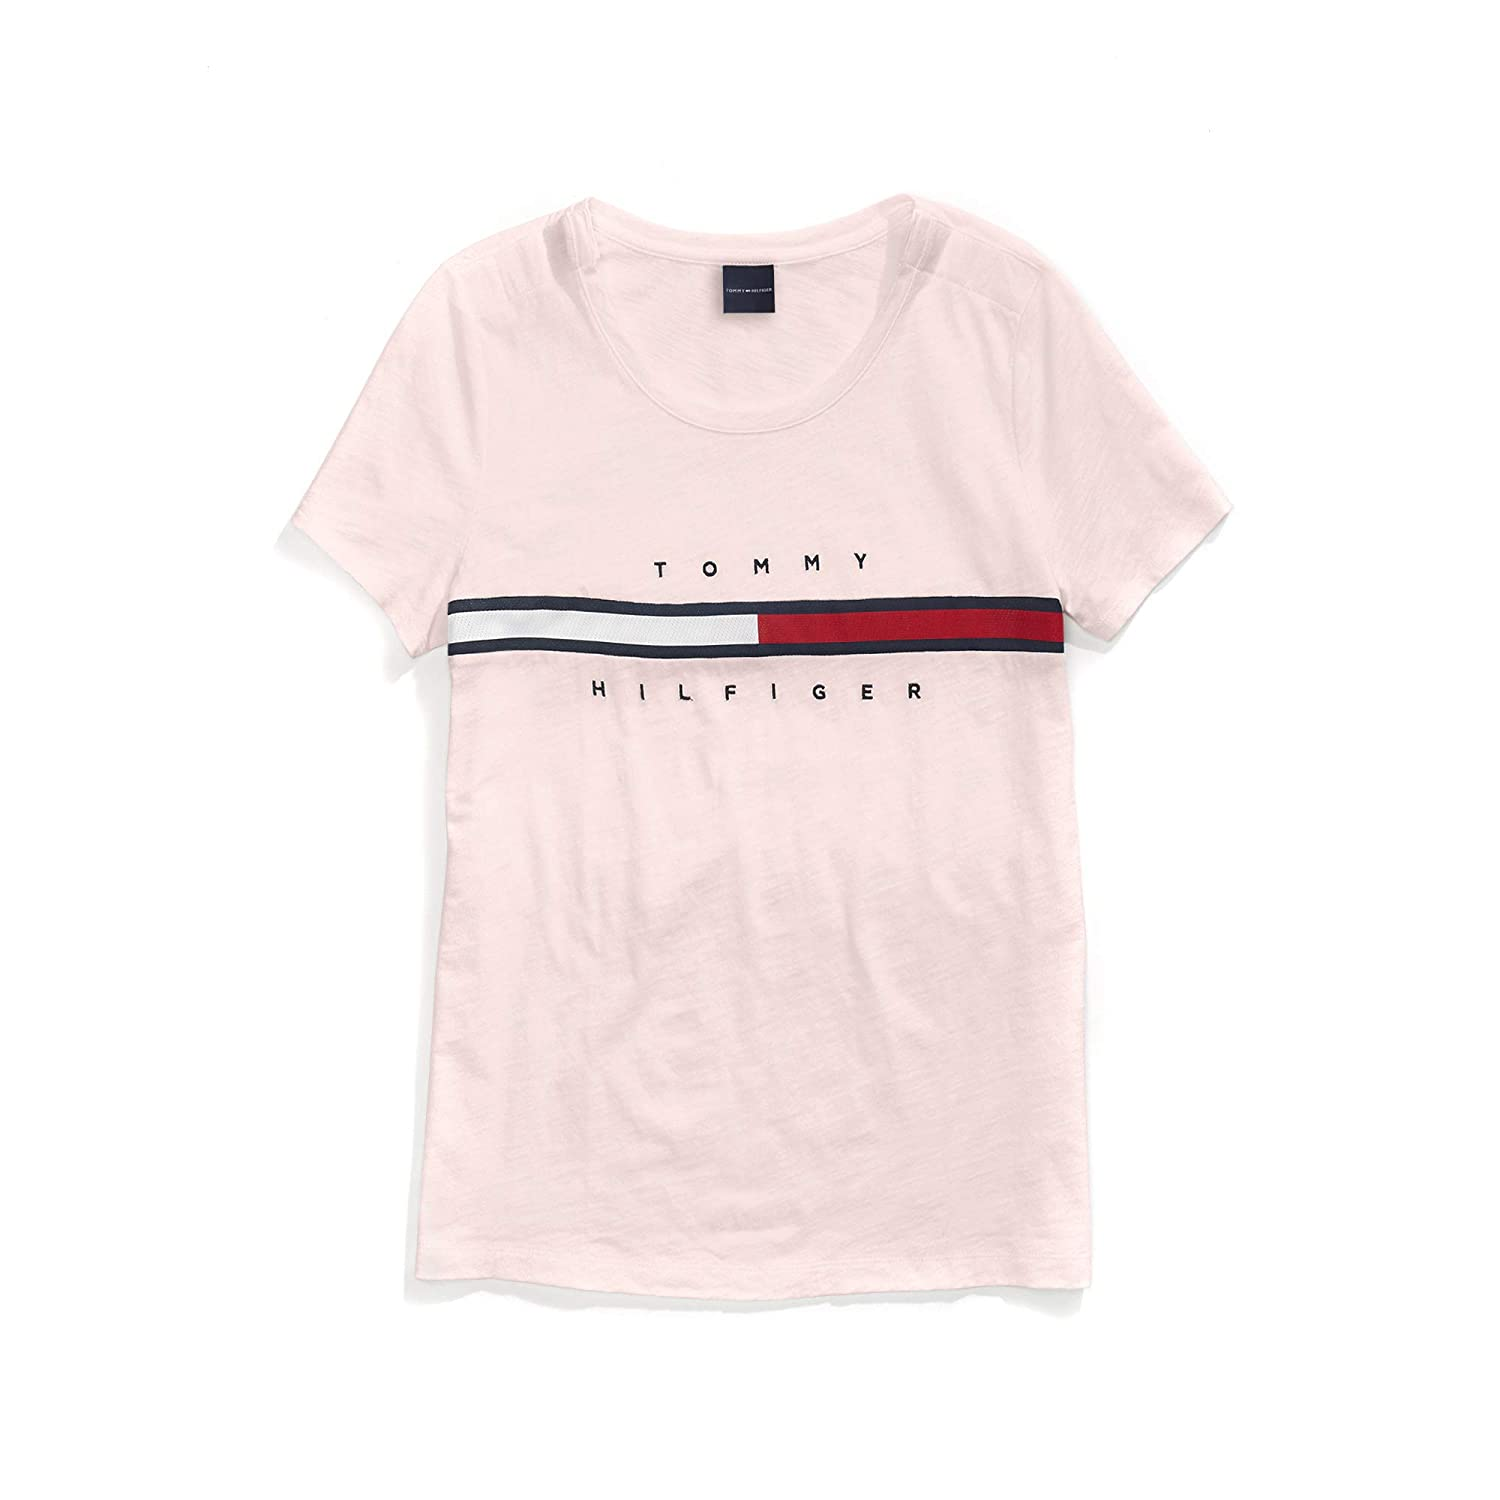 800f0a98 Tommy Hilfiger Women's T Shirt with Magnetic Closure Signature Stripe Tee  at Amazon Women's Clothing store: